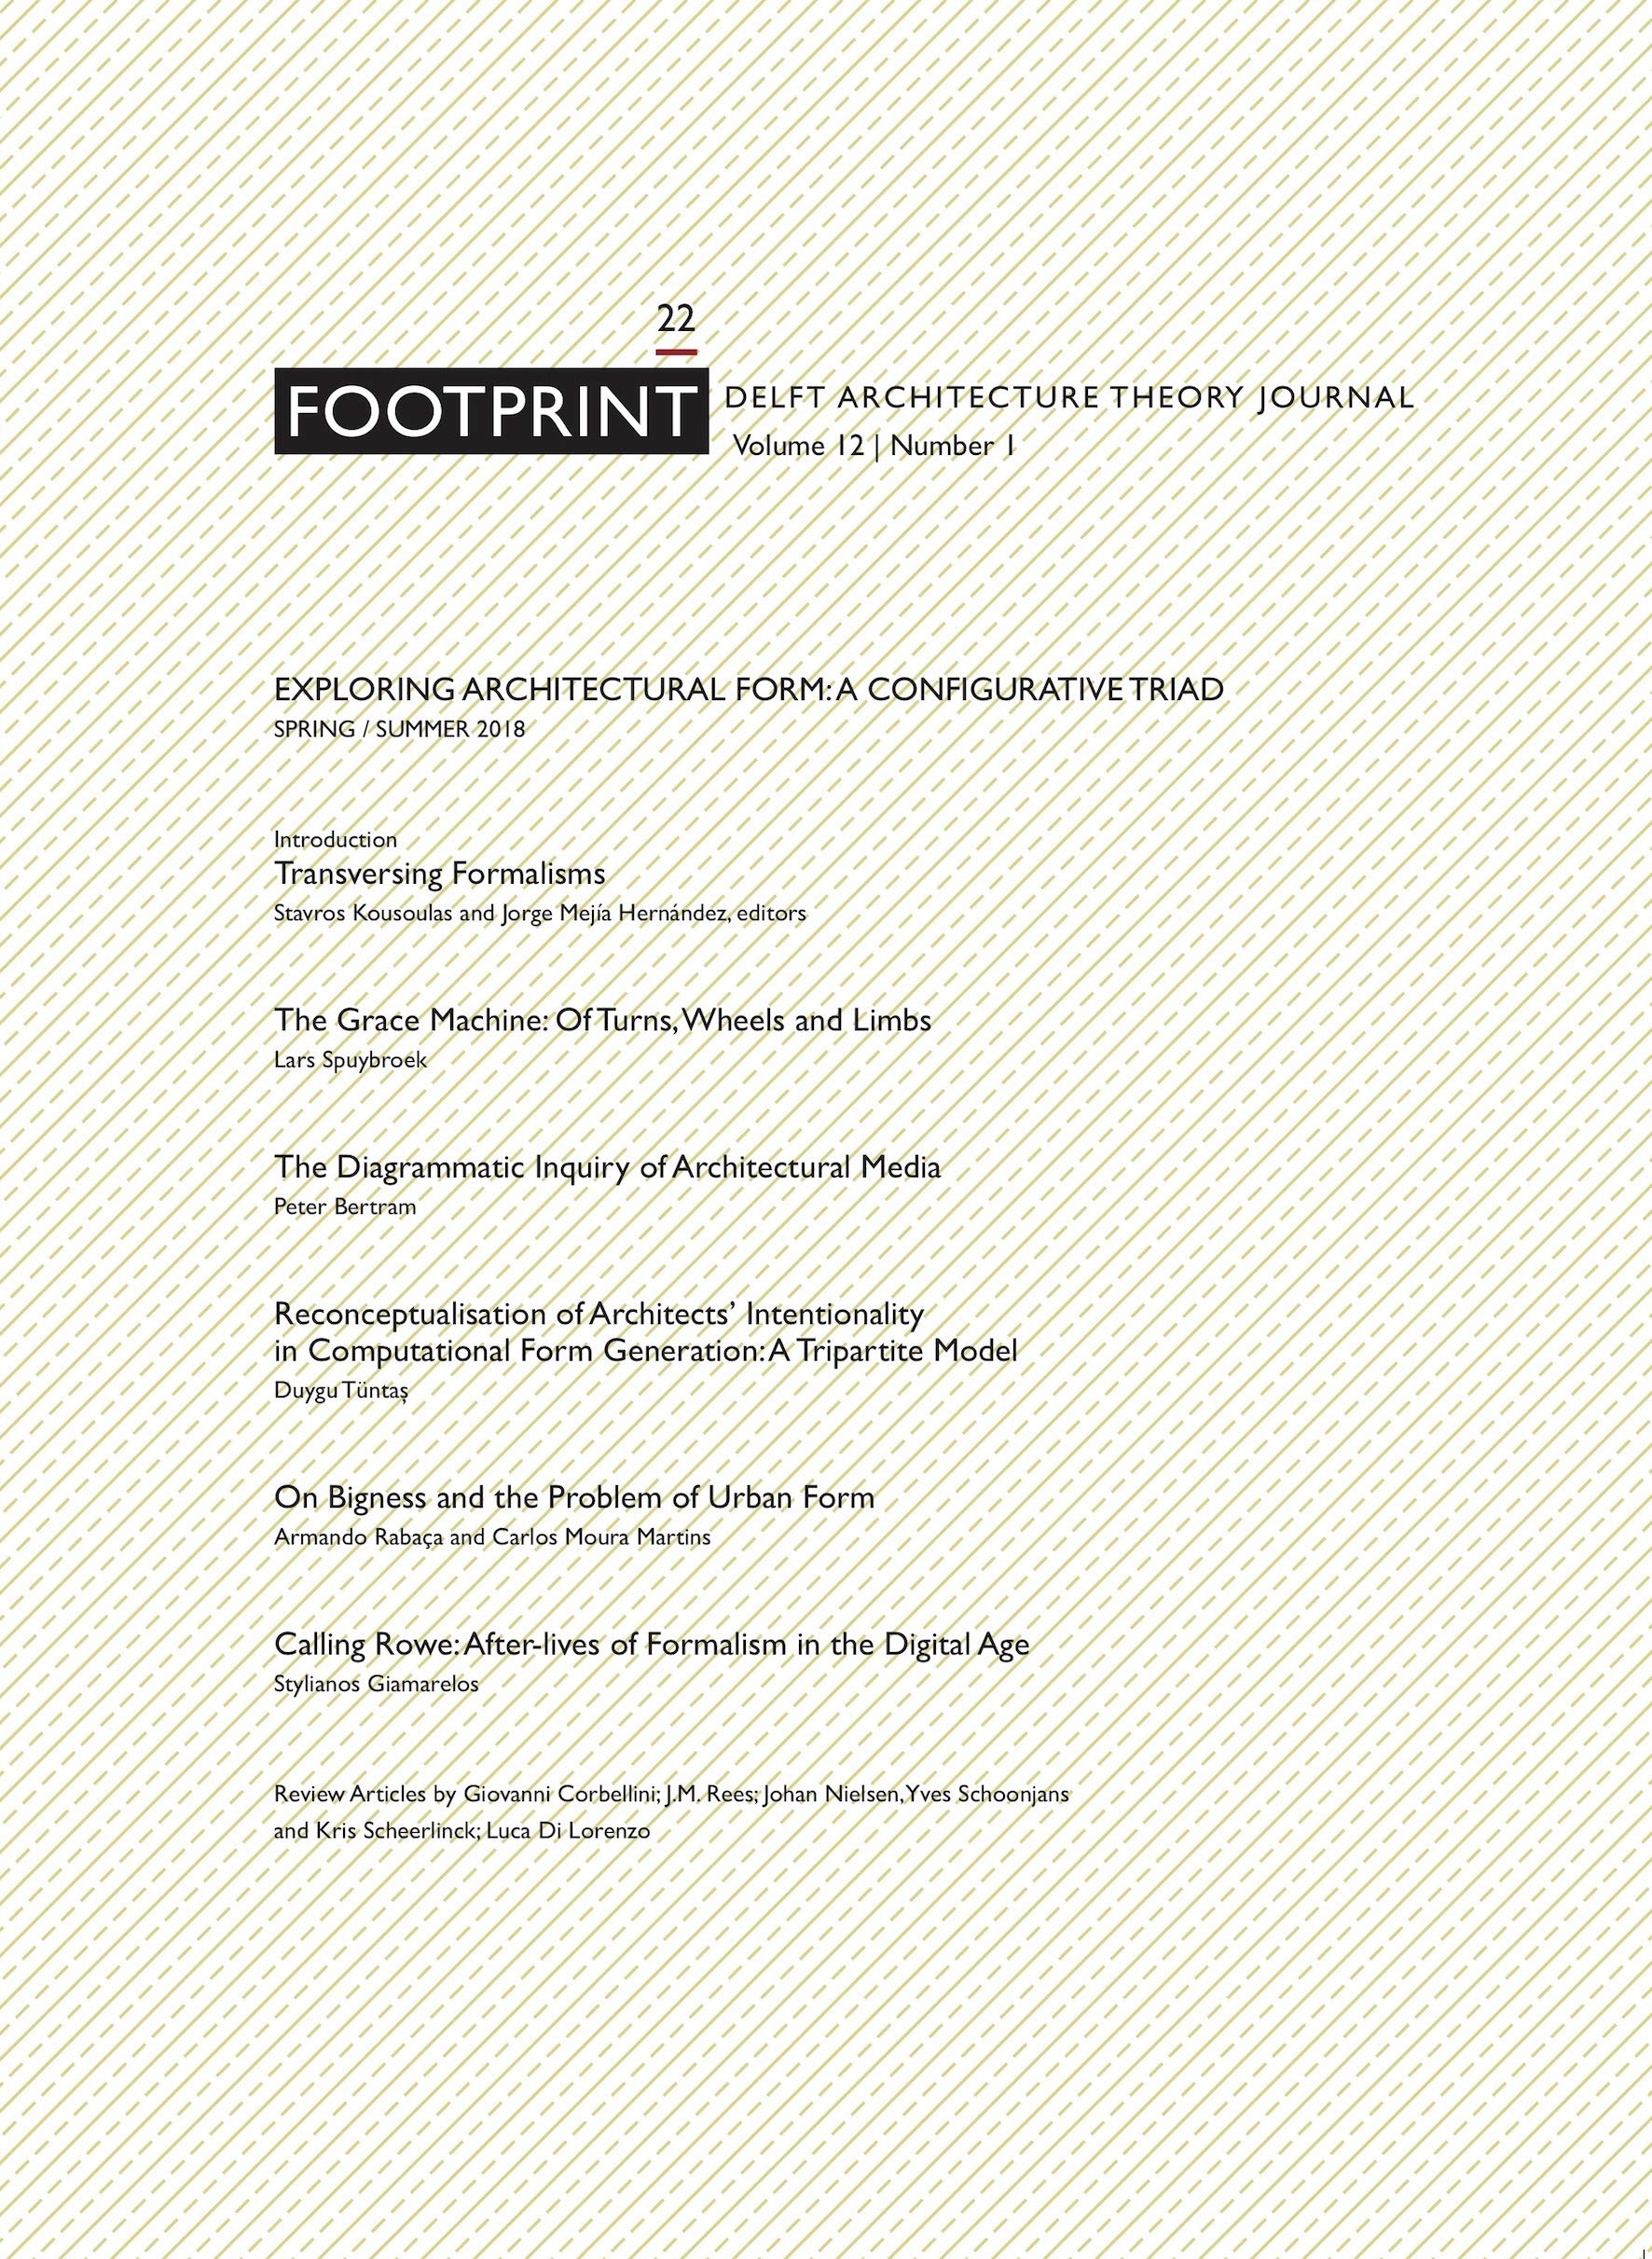 Buy Footprint 22 - Exploring Architectural Form: A